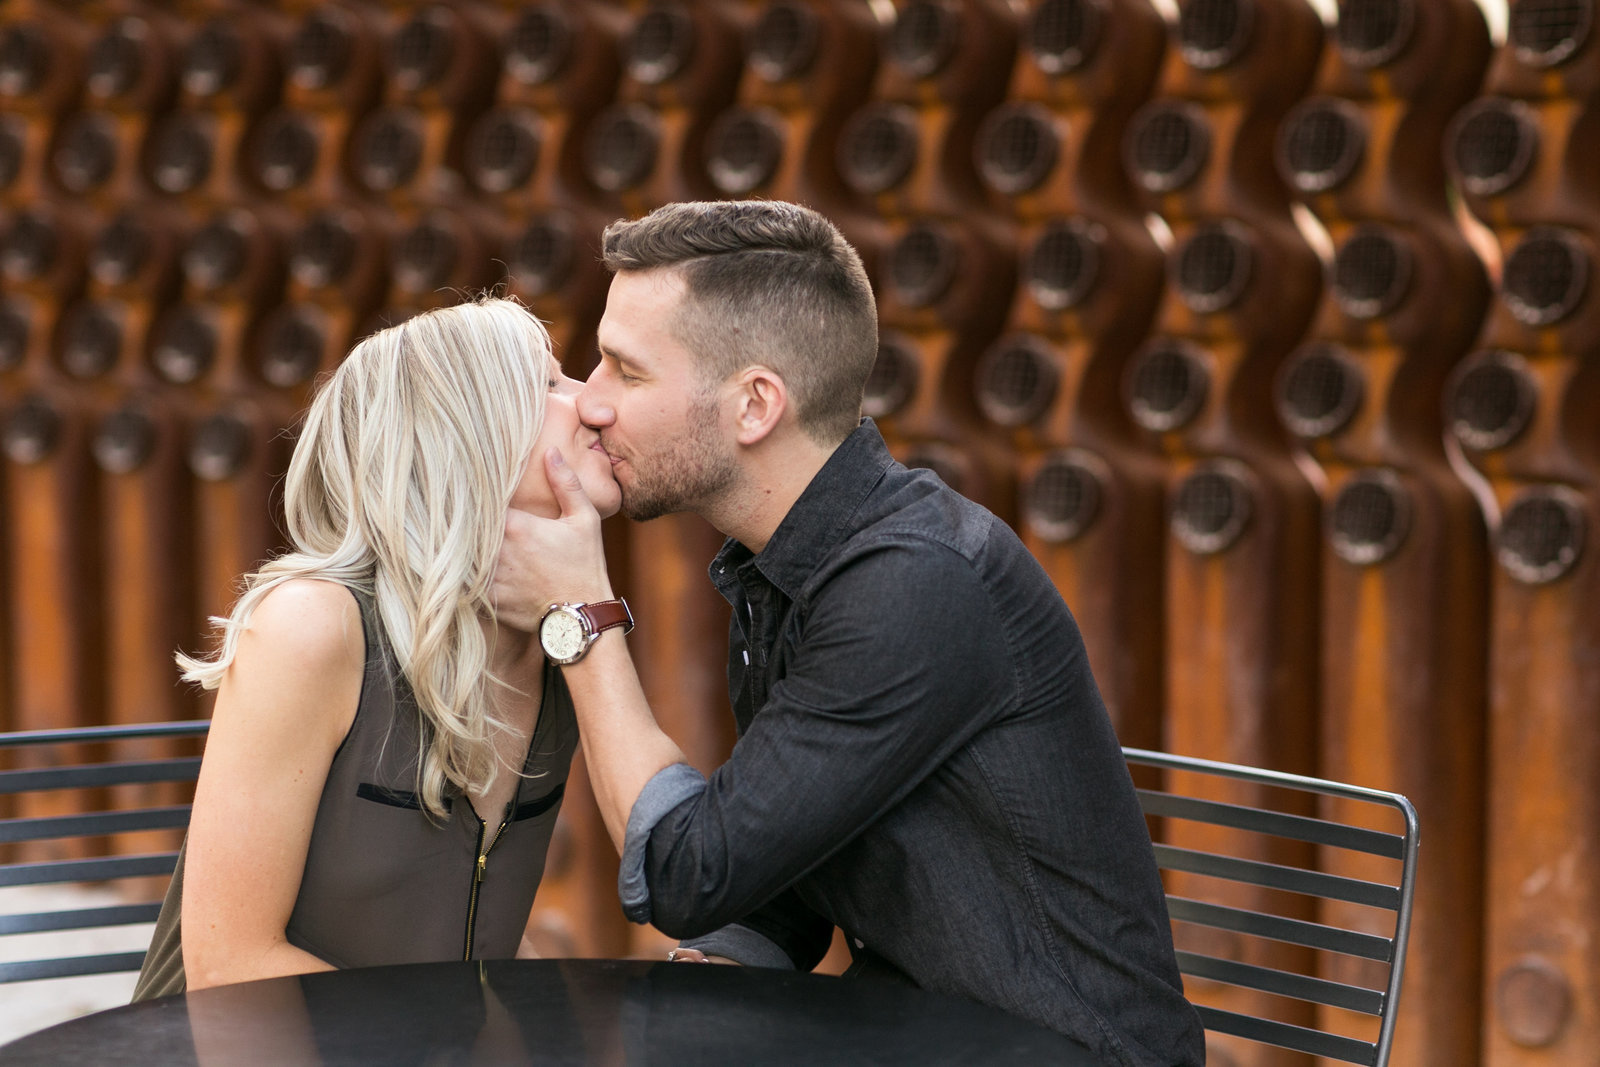 pearl-brewery-san-antonio-texas-engagement-session-river-walk-photo-111